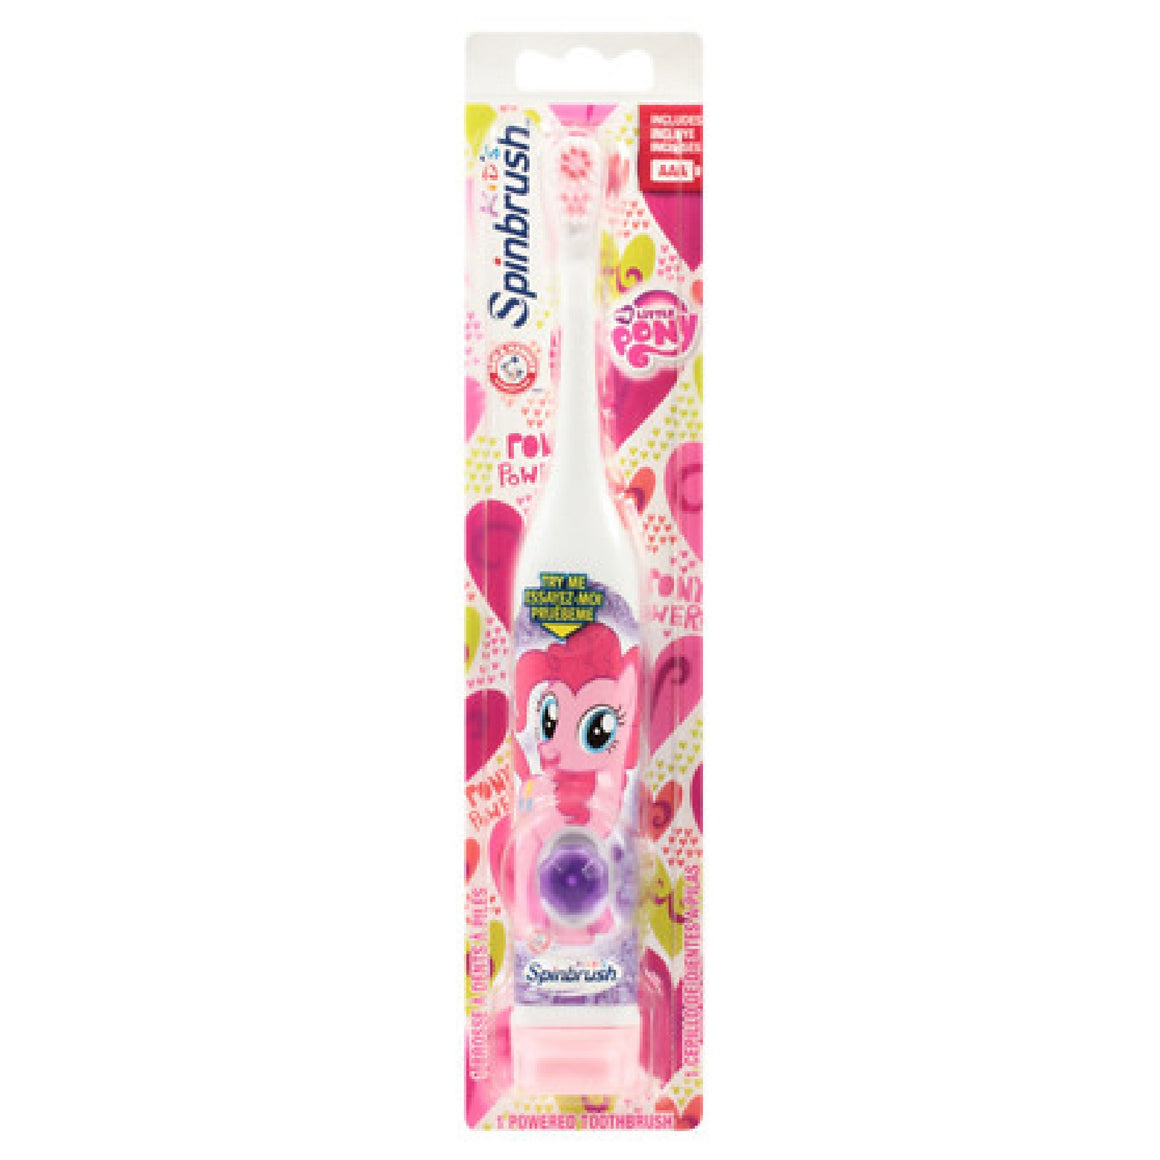 2 x Spinbrush My Little Pony Kids Electric Toothbrush